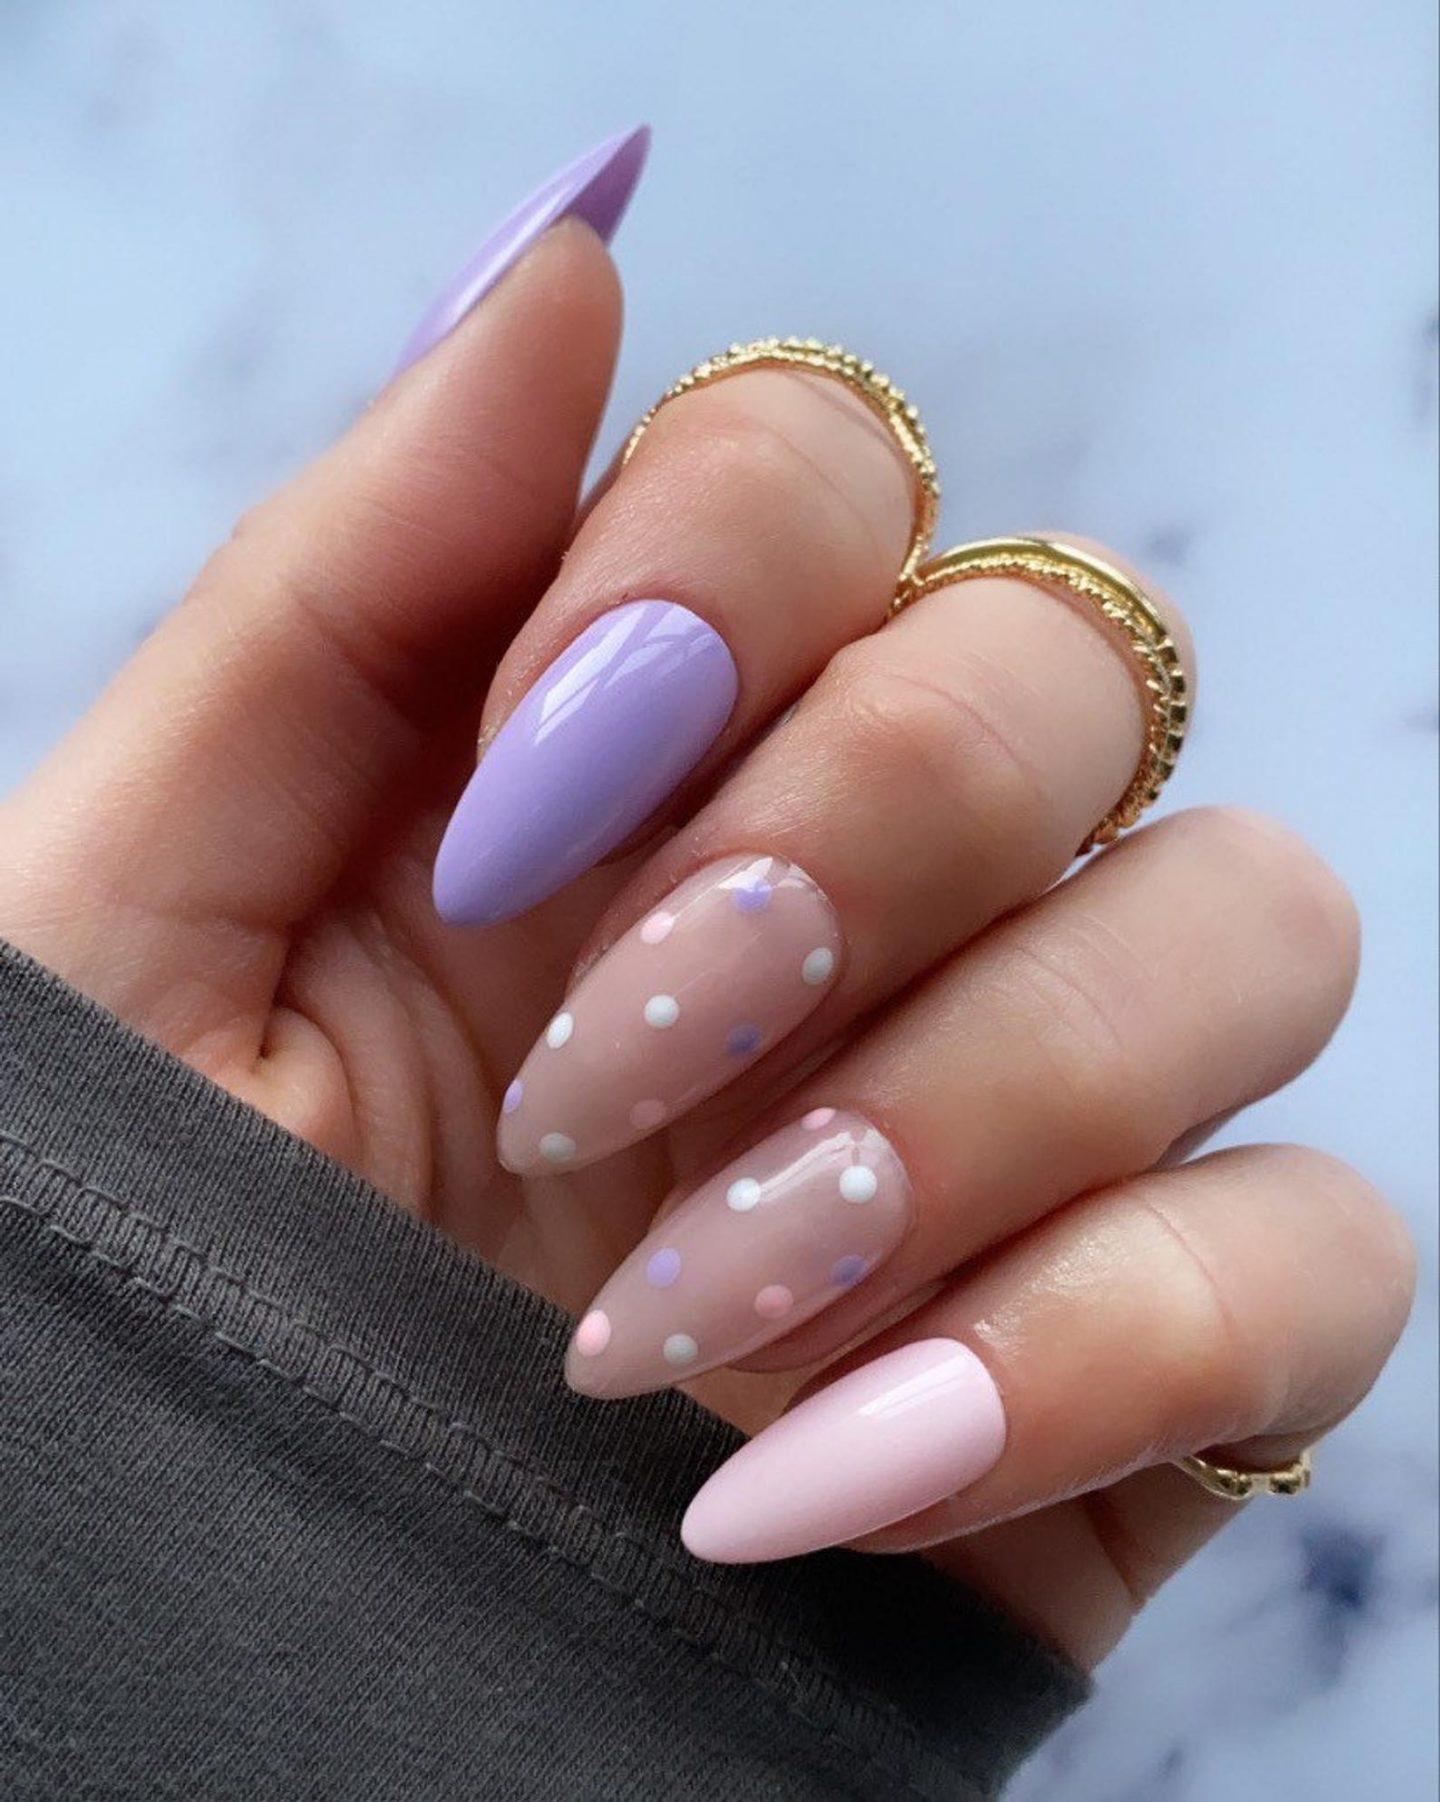 Pink and purple nails with polka dots